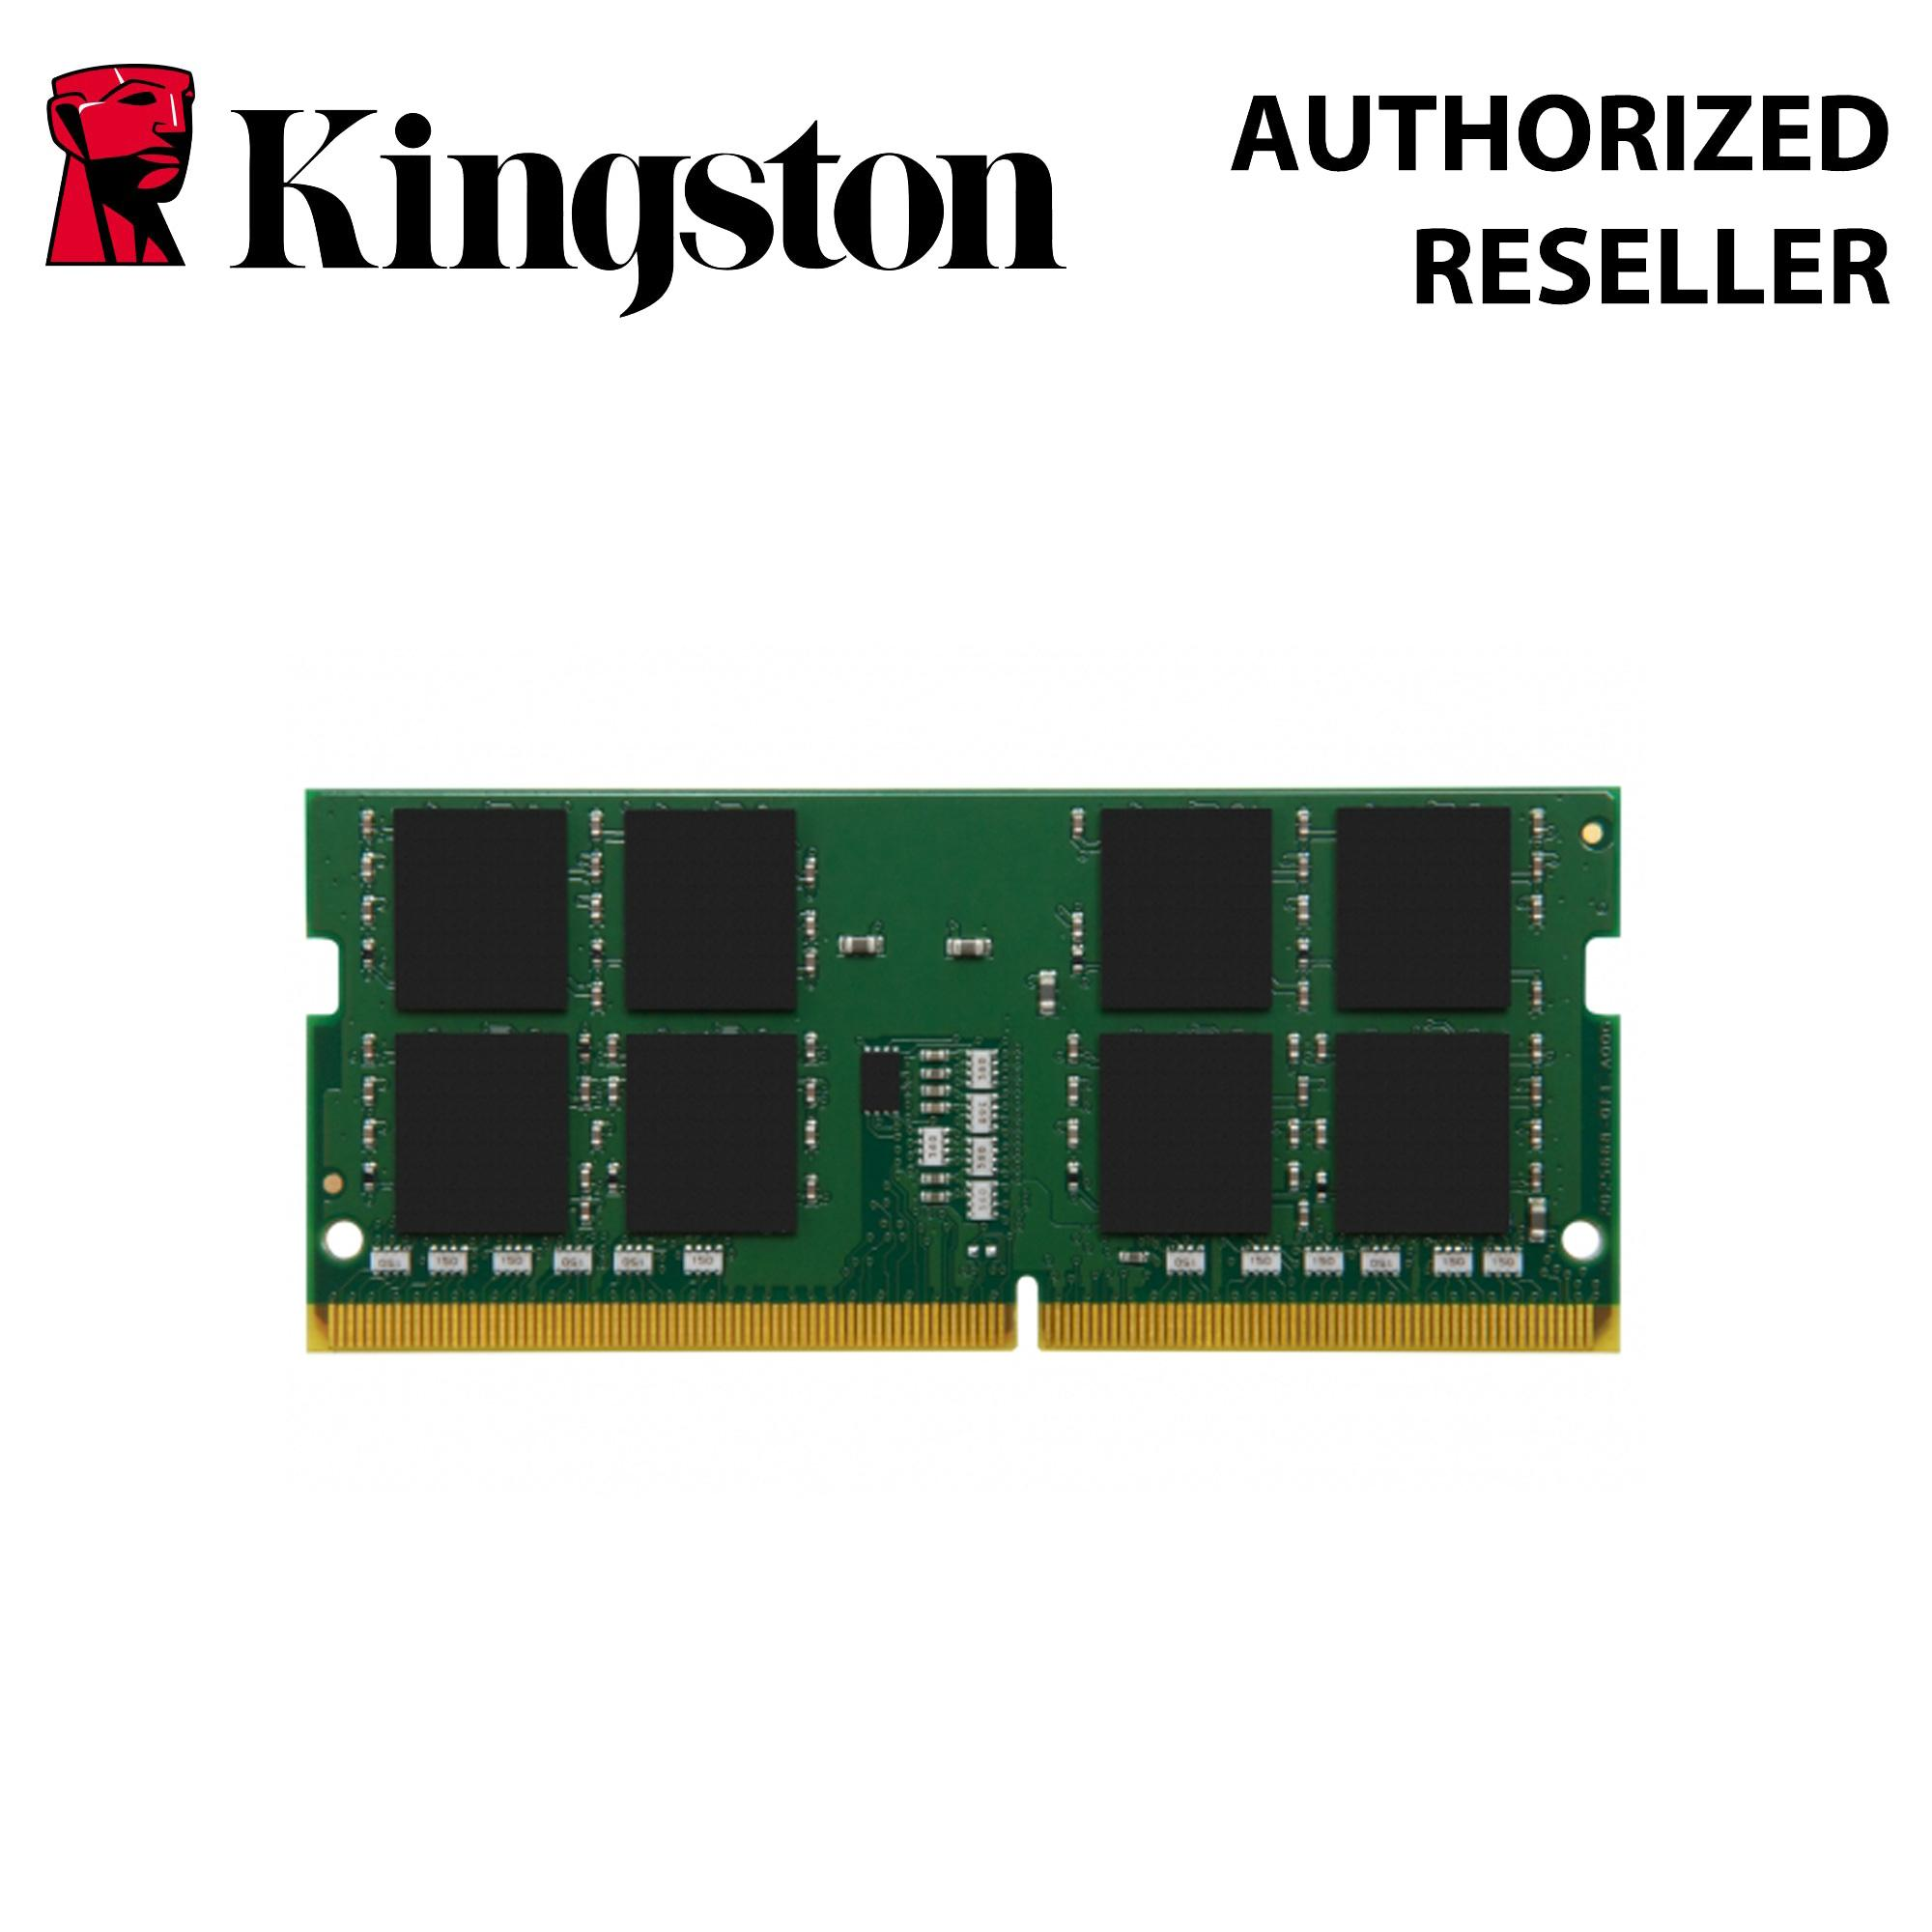 Incredible Kingston Valueram 16Gb Ddr4 2666Mhz Cl19 Non Ecc 1 2V Sodimm So Dimm Notebook Memory Kvr26S19D8 16 Download Free Architecture Designs Scobabritishbridgeorg